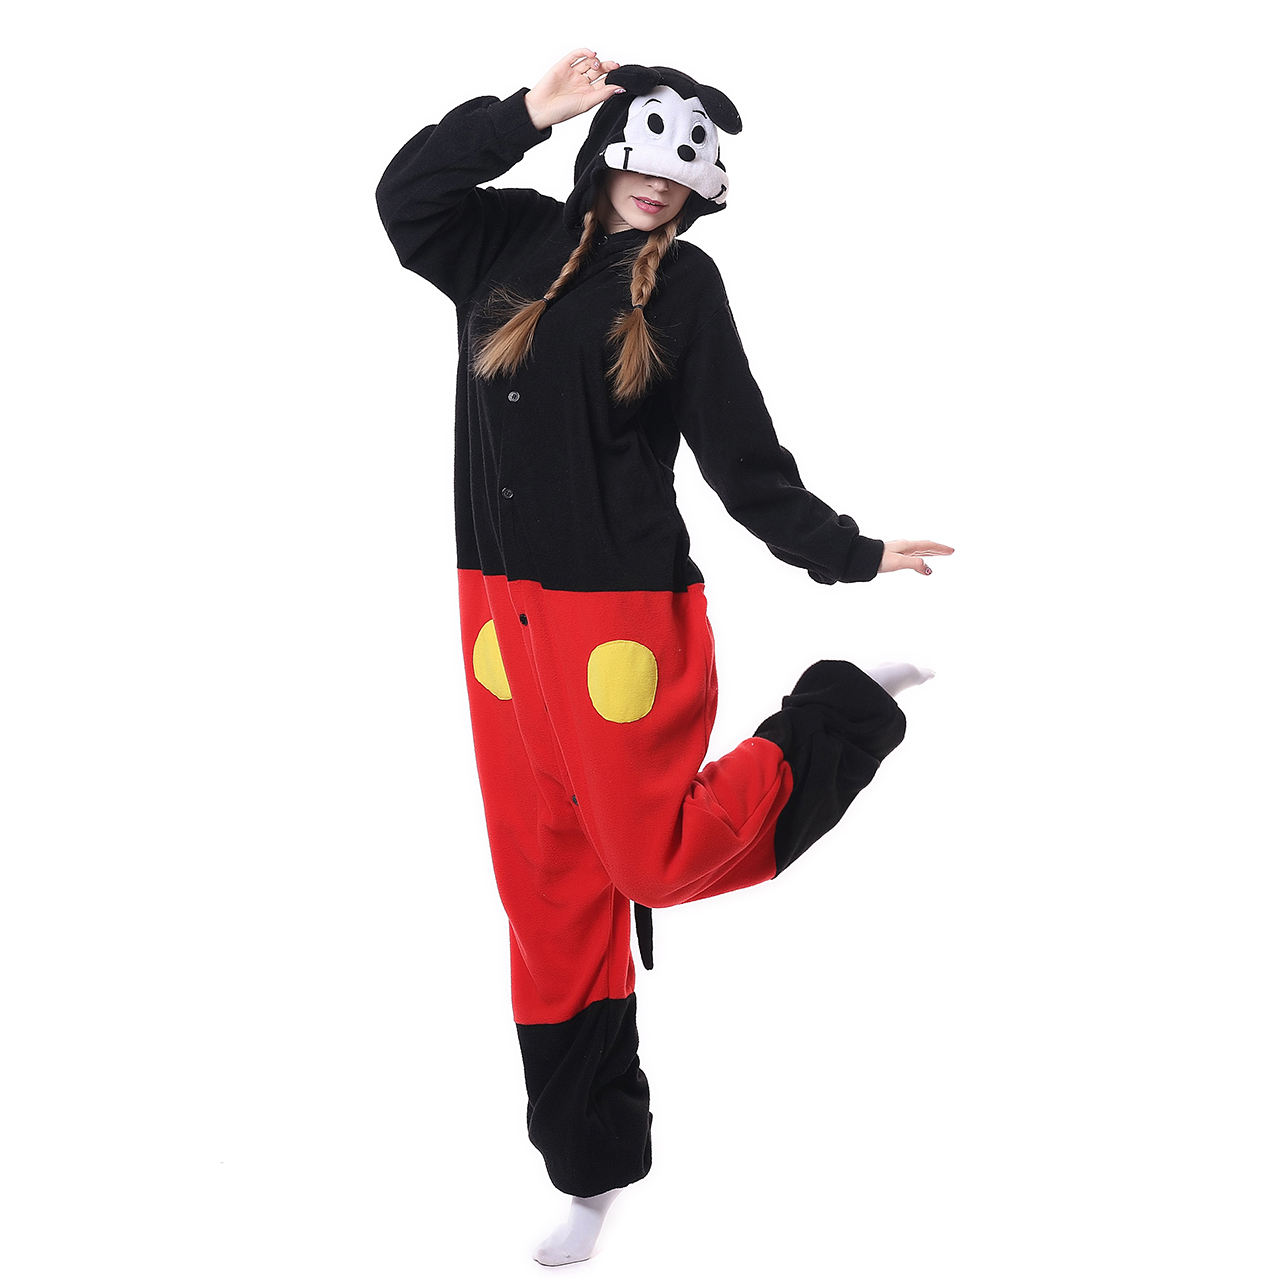 Super Cute Pup Onesie Girl And Mouse Animal Wholesale Pajamas Polar Fleece Kigurum For Party